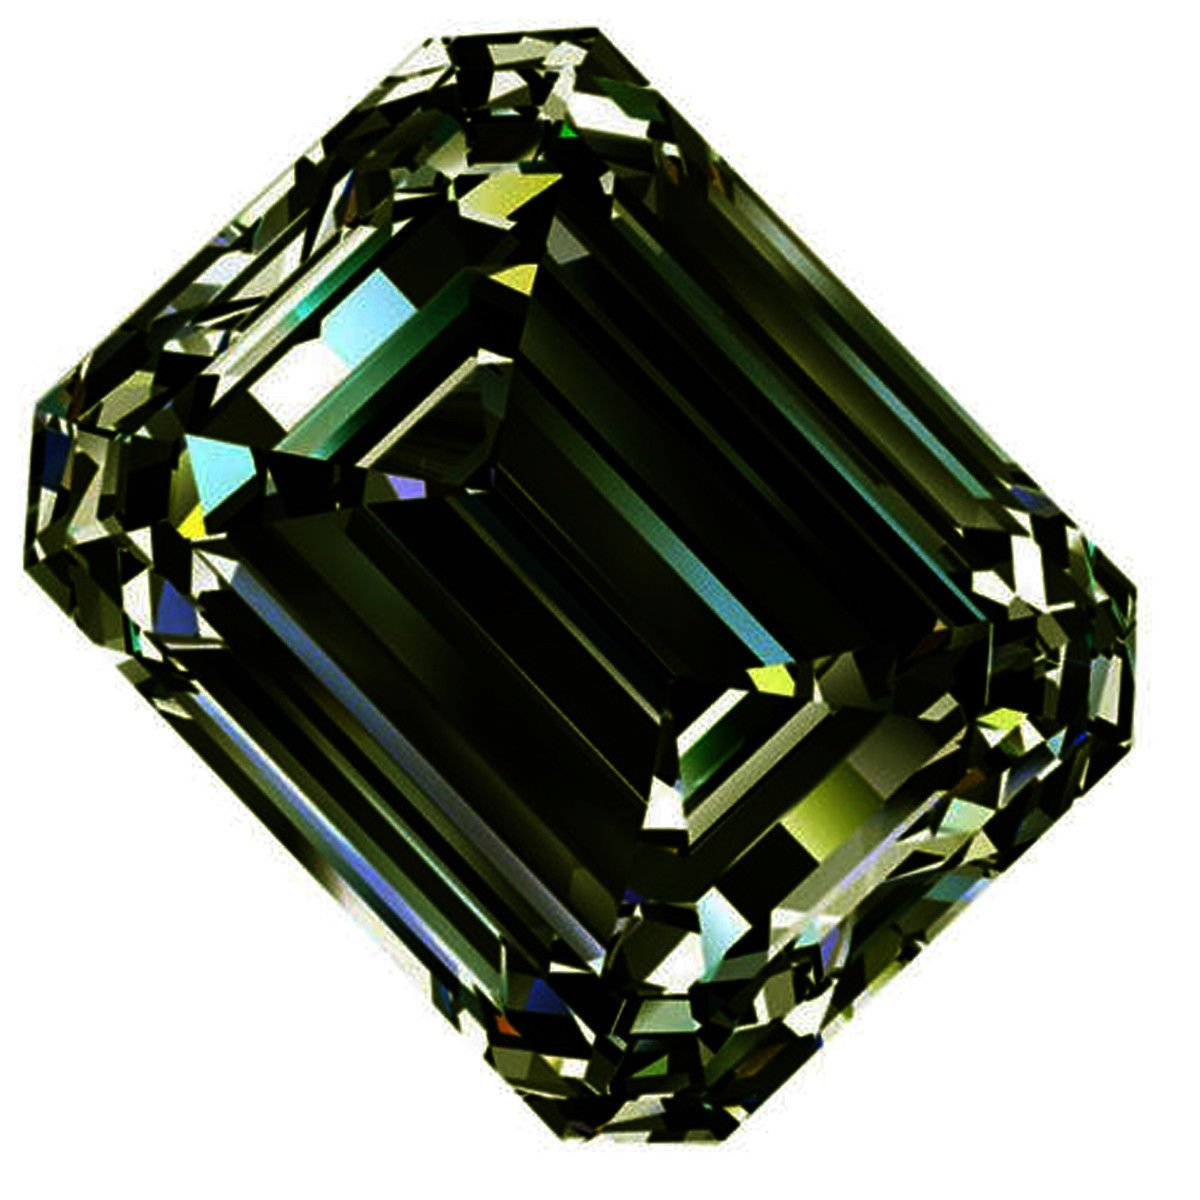 RINGJEWEL 1.49 ct VVS1 Emerald Cut Real Loose Moissanite Use 4 Pendant/Ring Dark Blueish Green Color Stone